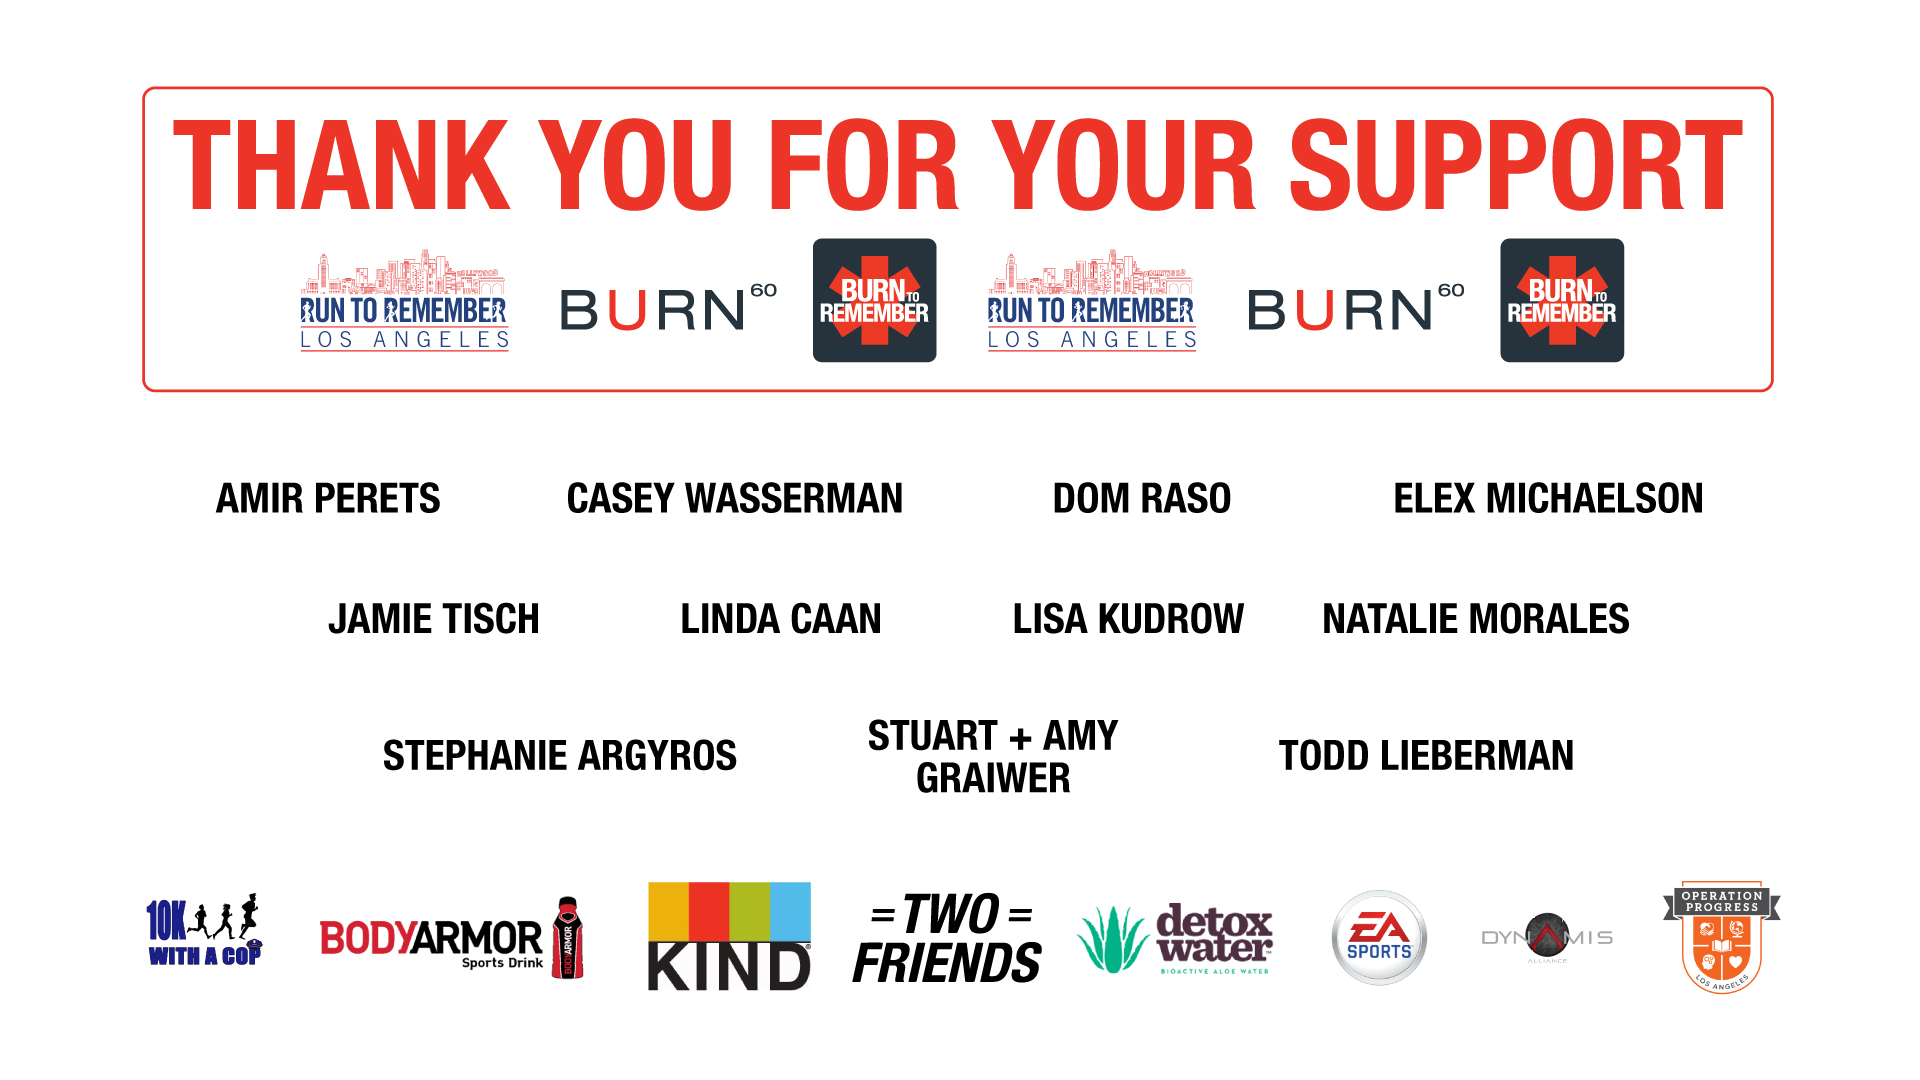 THANk-YOU-FOR-YOUR-SUPPORT.jpg